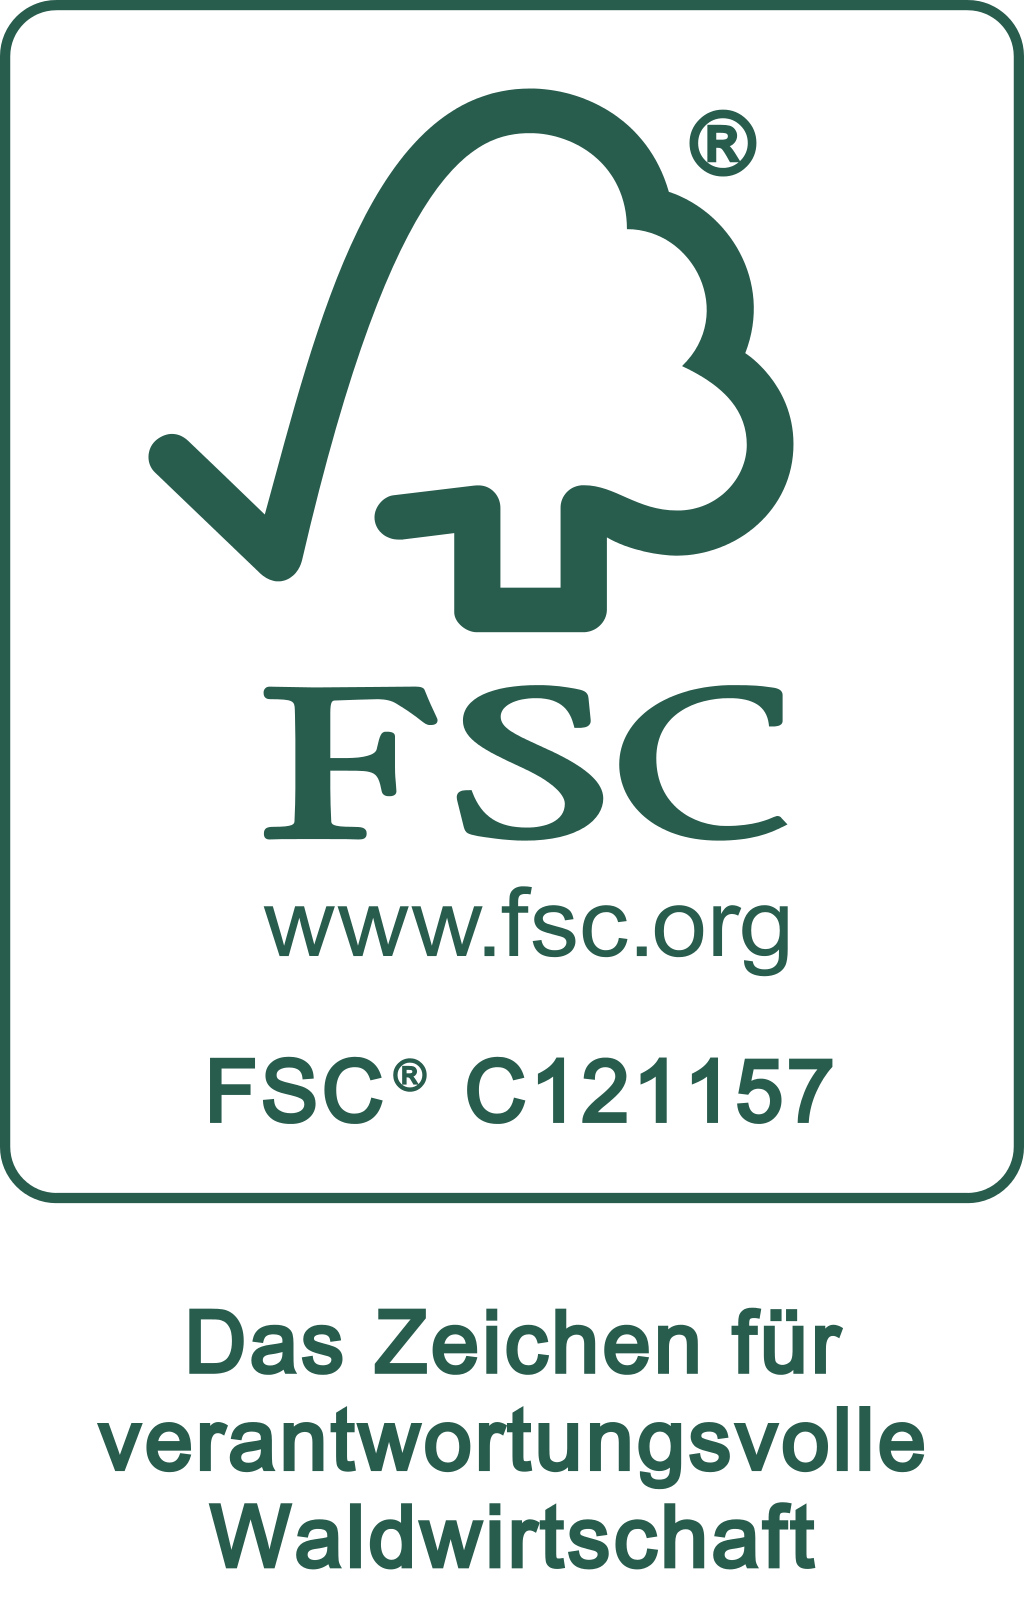 FSC_C121157_Promotional_with_text_Landscape_GreenOnWhite_r_vZbRaQ